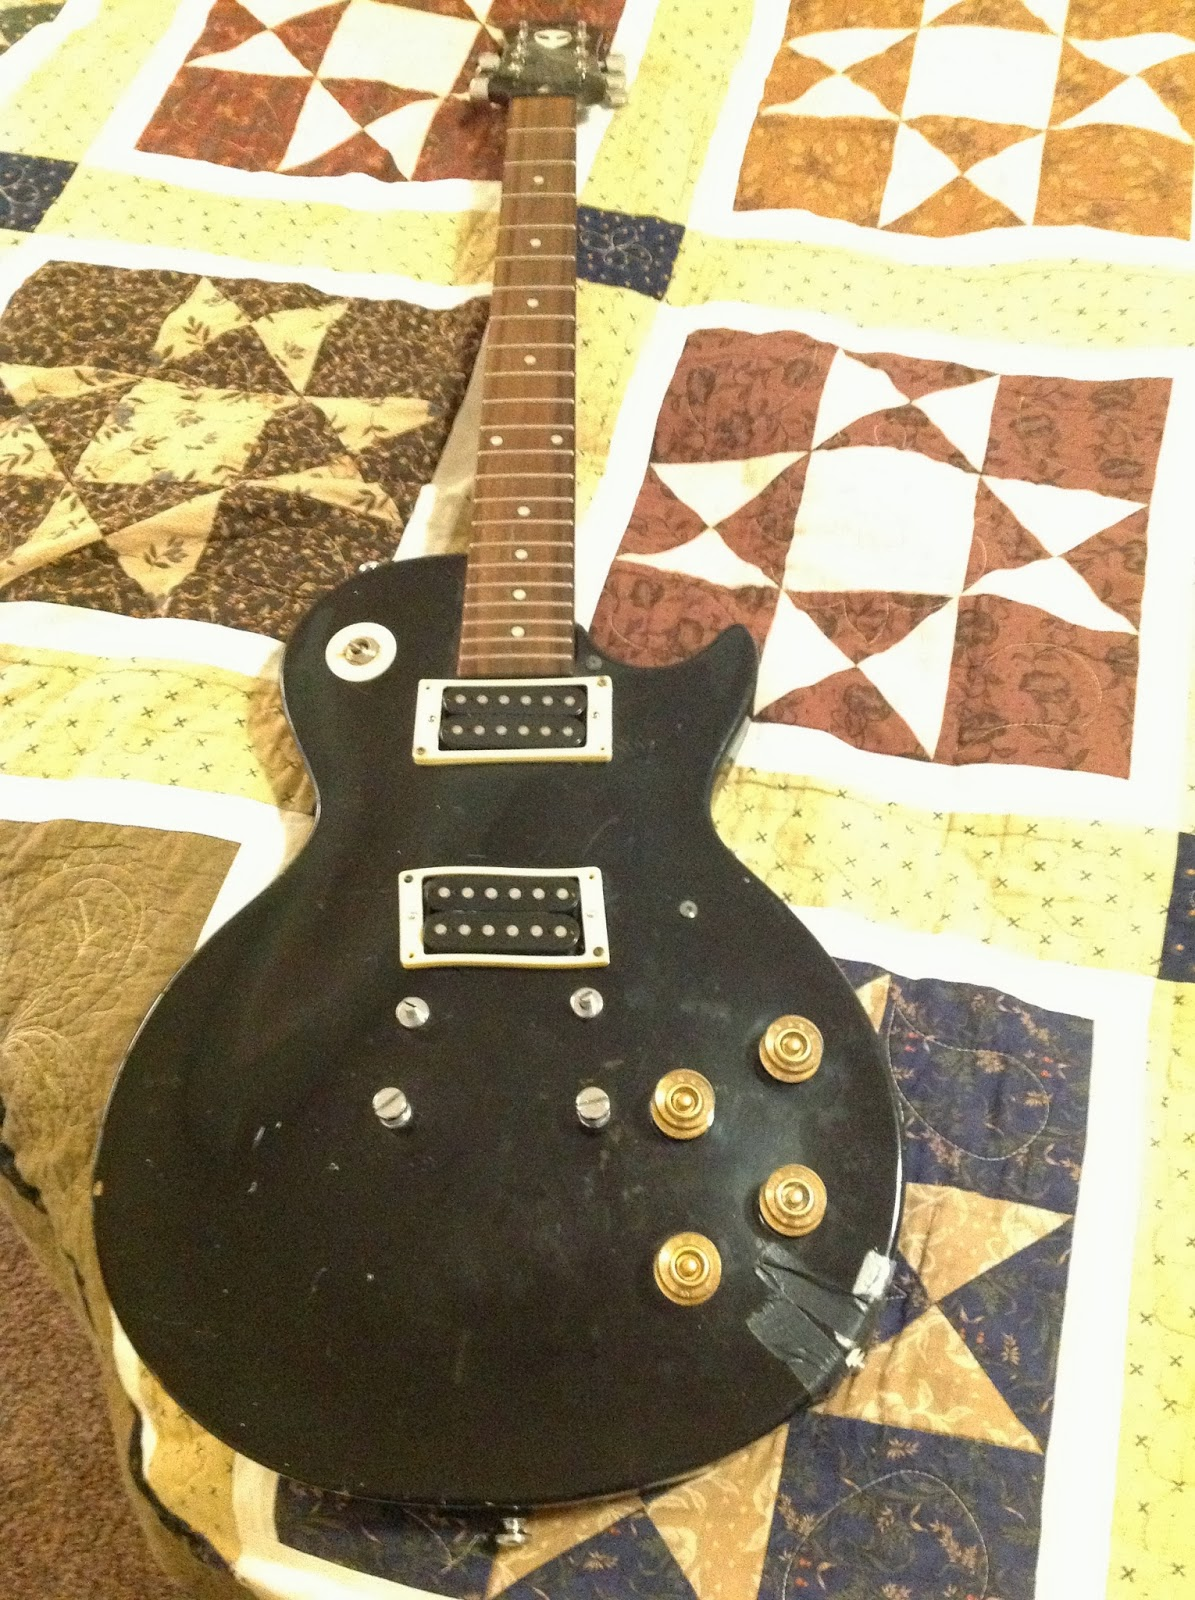 terrible guitars '95 korean epiphone les paul 100 epiphone lp 100 vs. standard the first steps were to document issues and abuse and formulate a plan